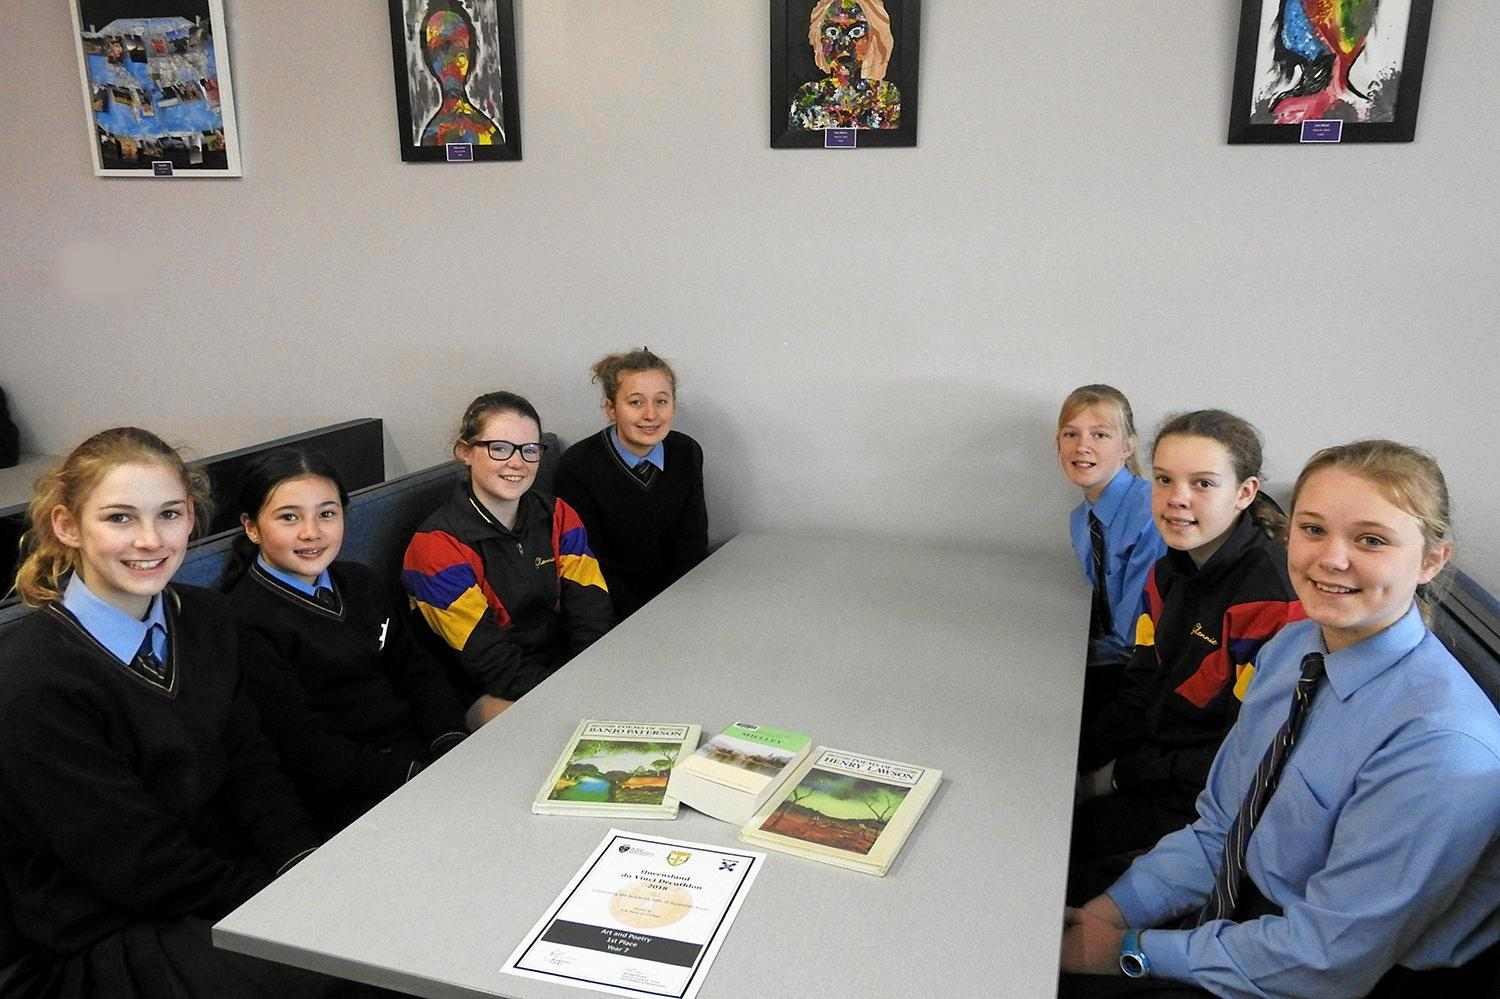 The Glennie School Year 7 students at the The da Vinci Decathlon Queensland event are (from left) Holly Beaton, Celeste Sun-Miller, Kristen Davies, Mia Brown, Brianna Whyte, Jessica Irwin at and April Smith.